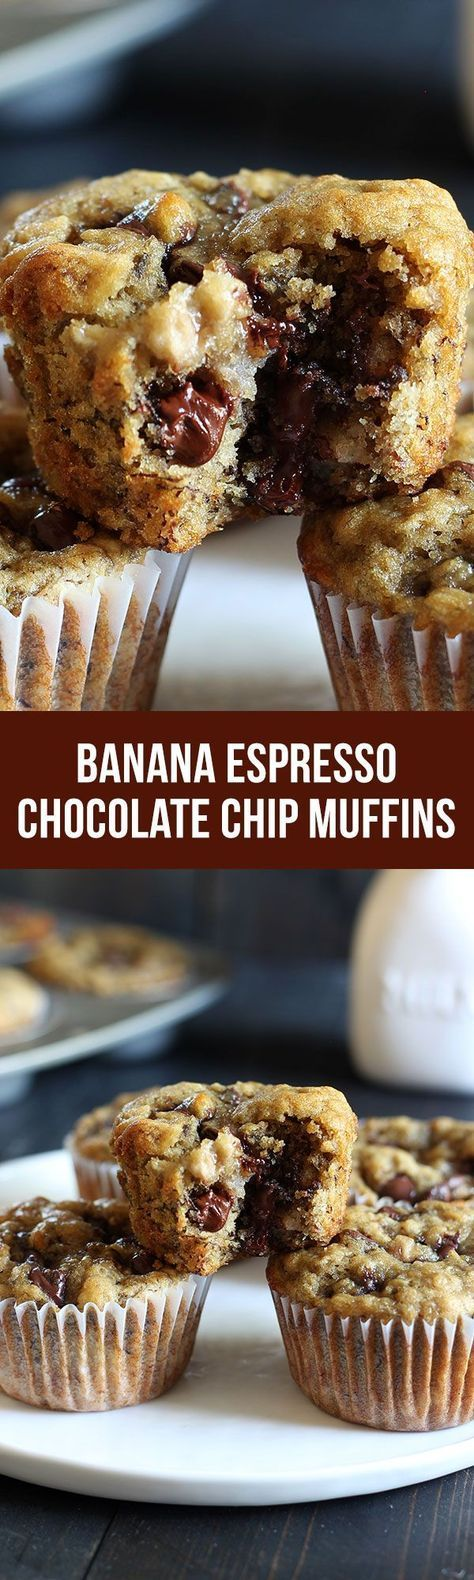 One of my ALL time fave muffin recipes for over 7 years!! You gotta make this…